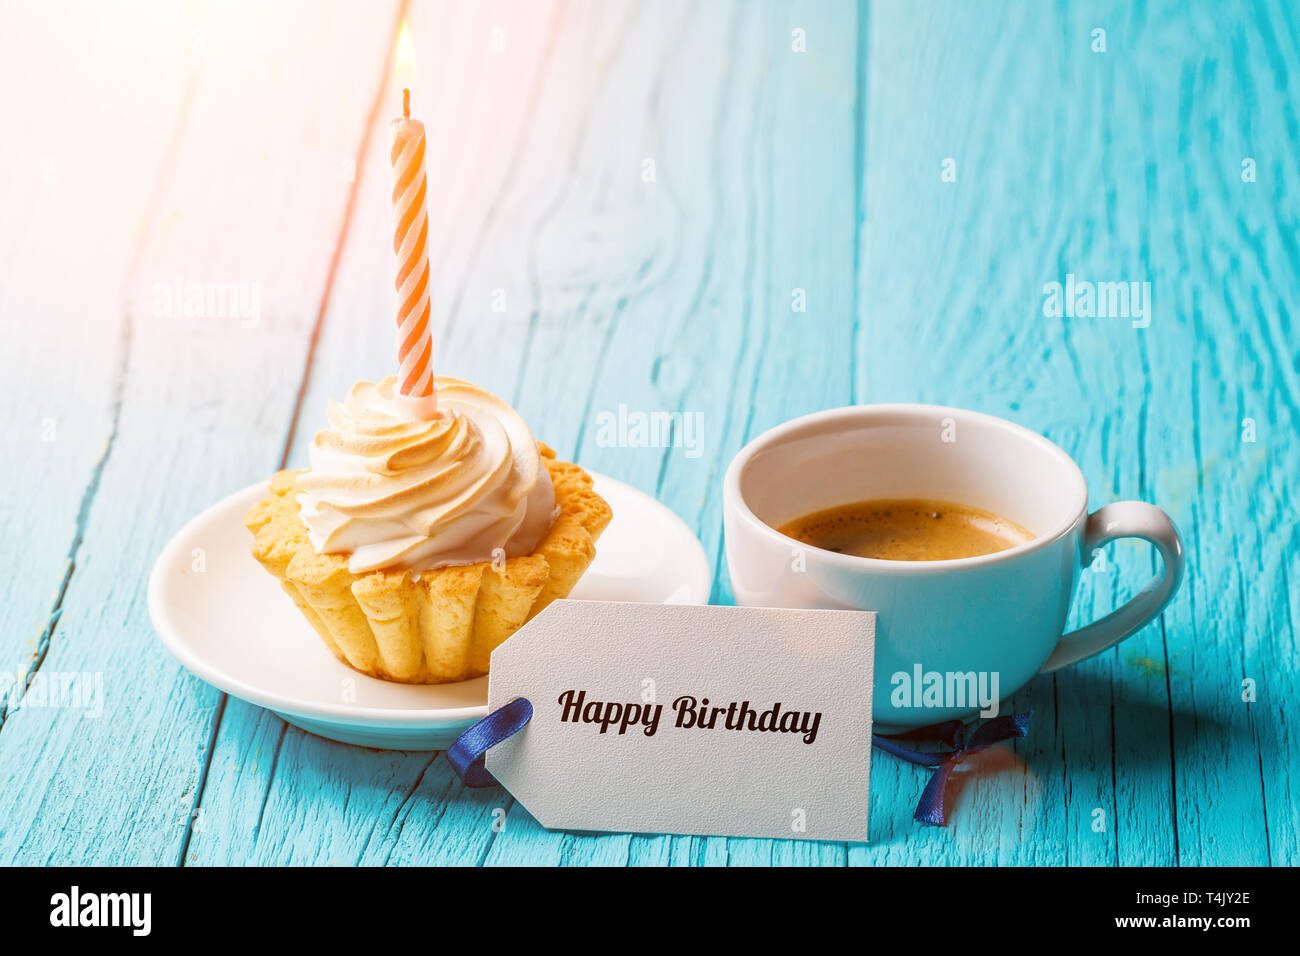 Happy Birthday Card Cup Coffee High Resolution Stock Photography And Images Alamy